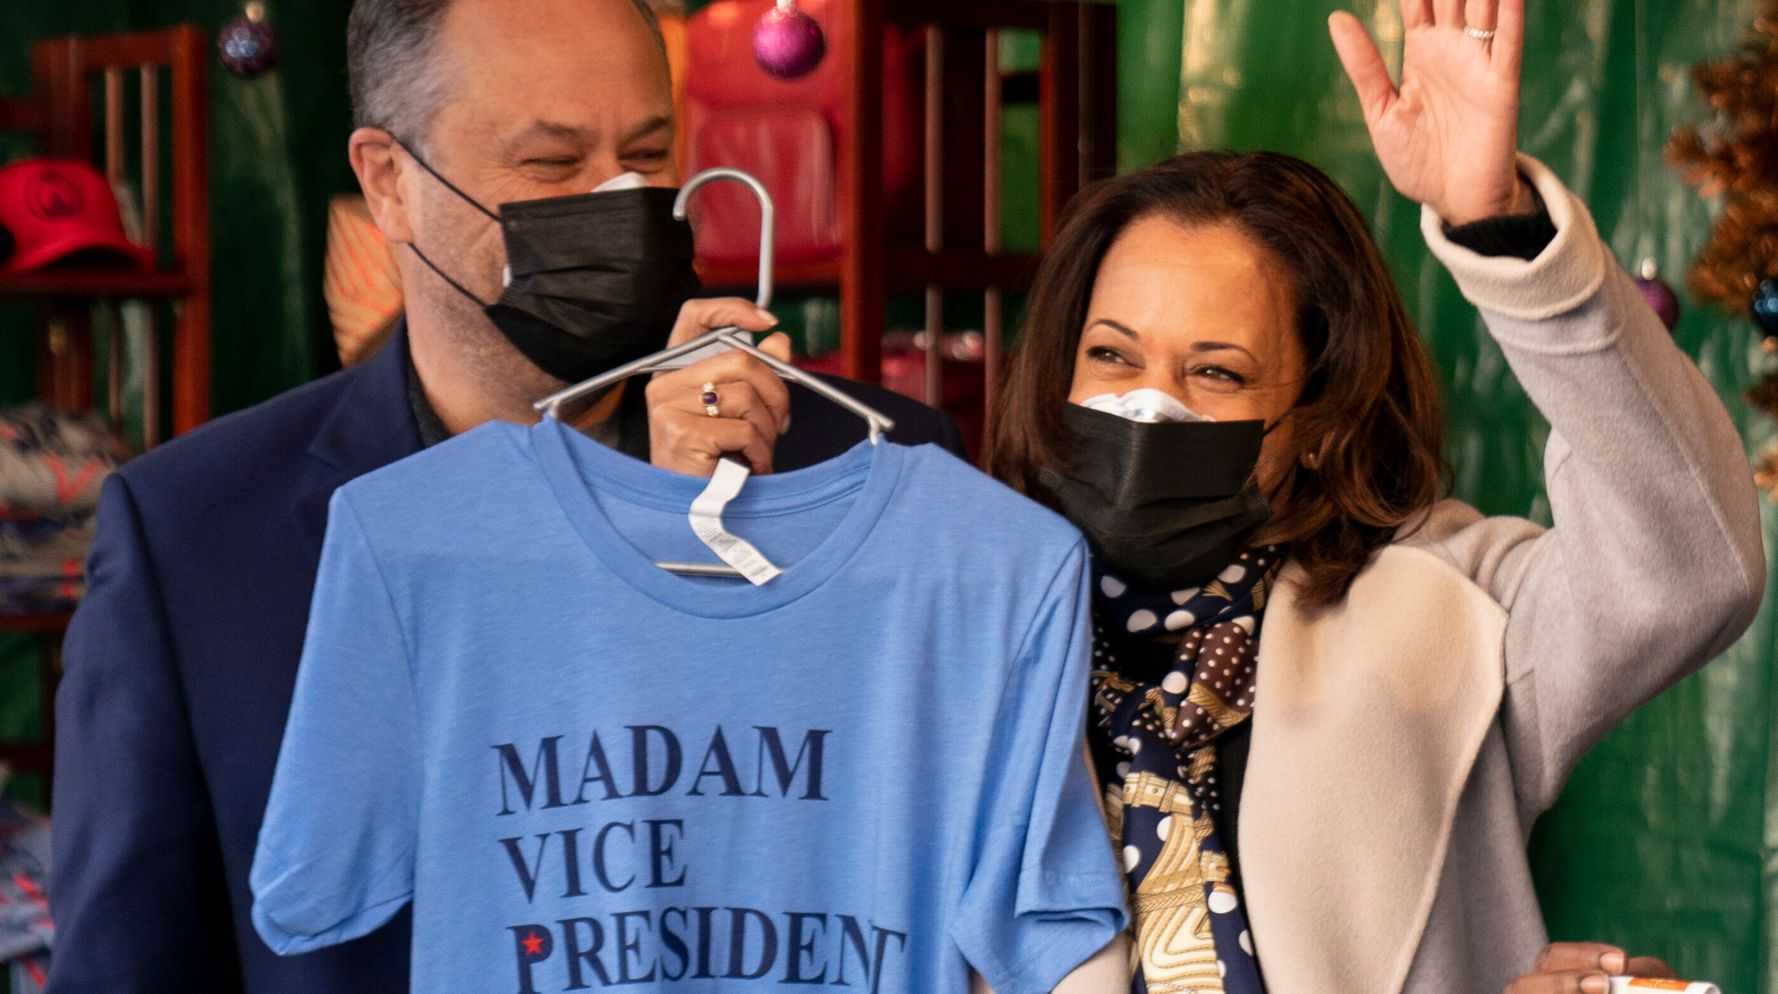 Kamala Harris Gets A Big Laugh Out Of Another Trump Run: 'Please'